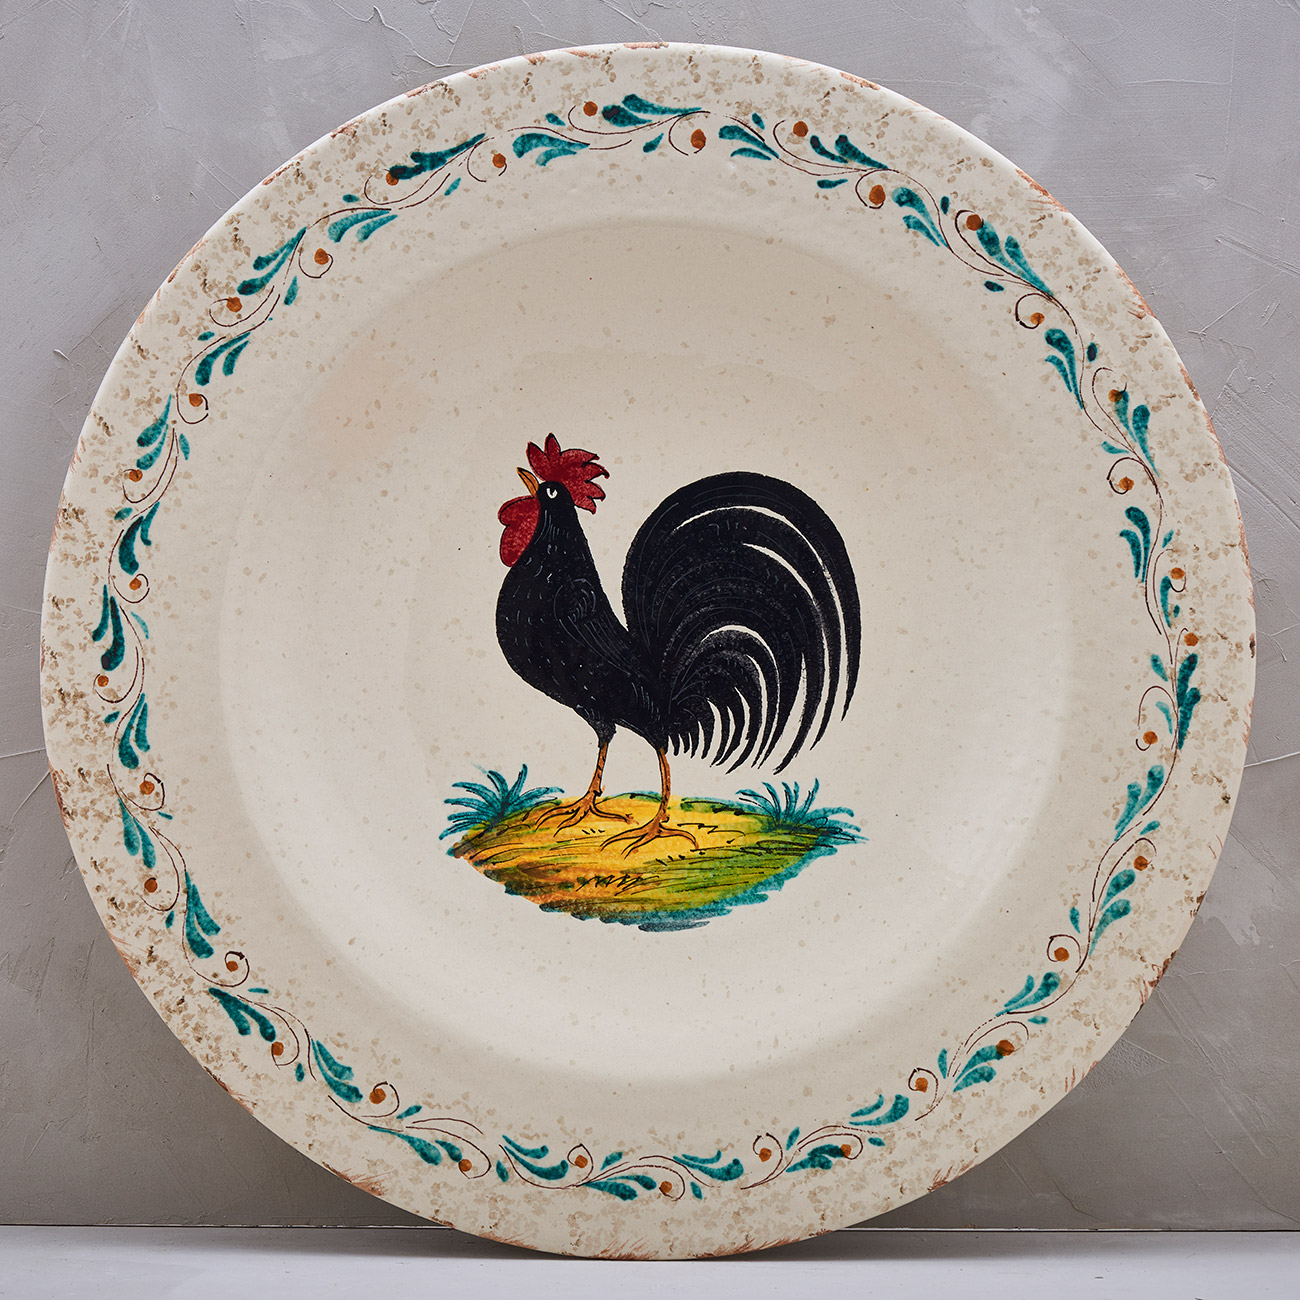 Black Rooster Plate - 52 cm 1